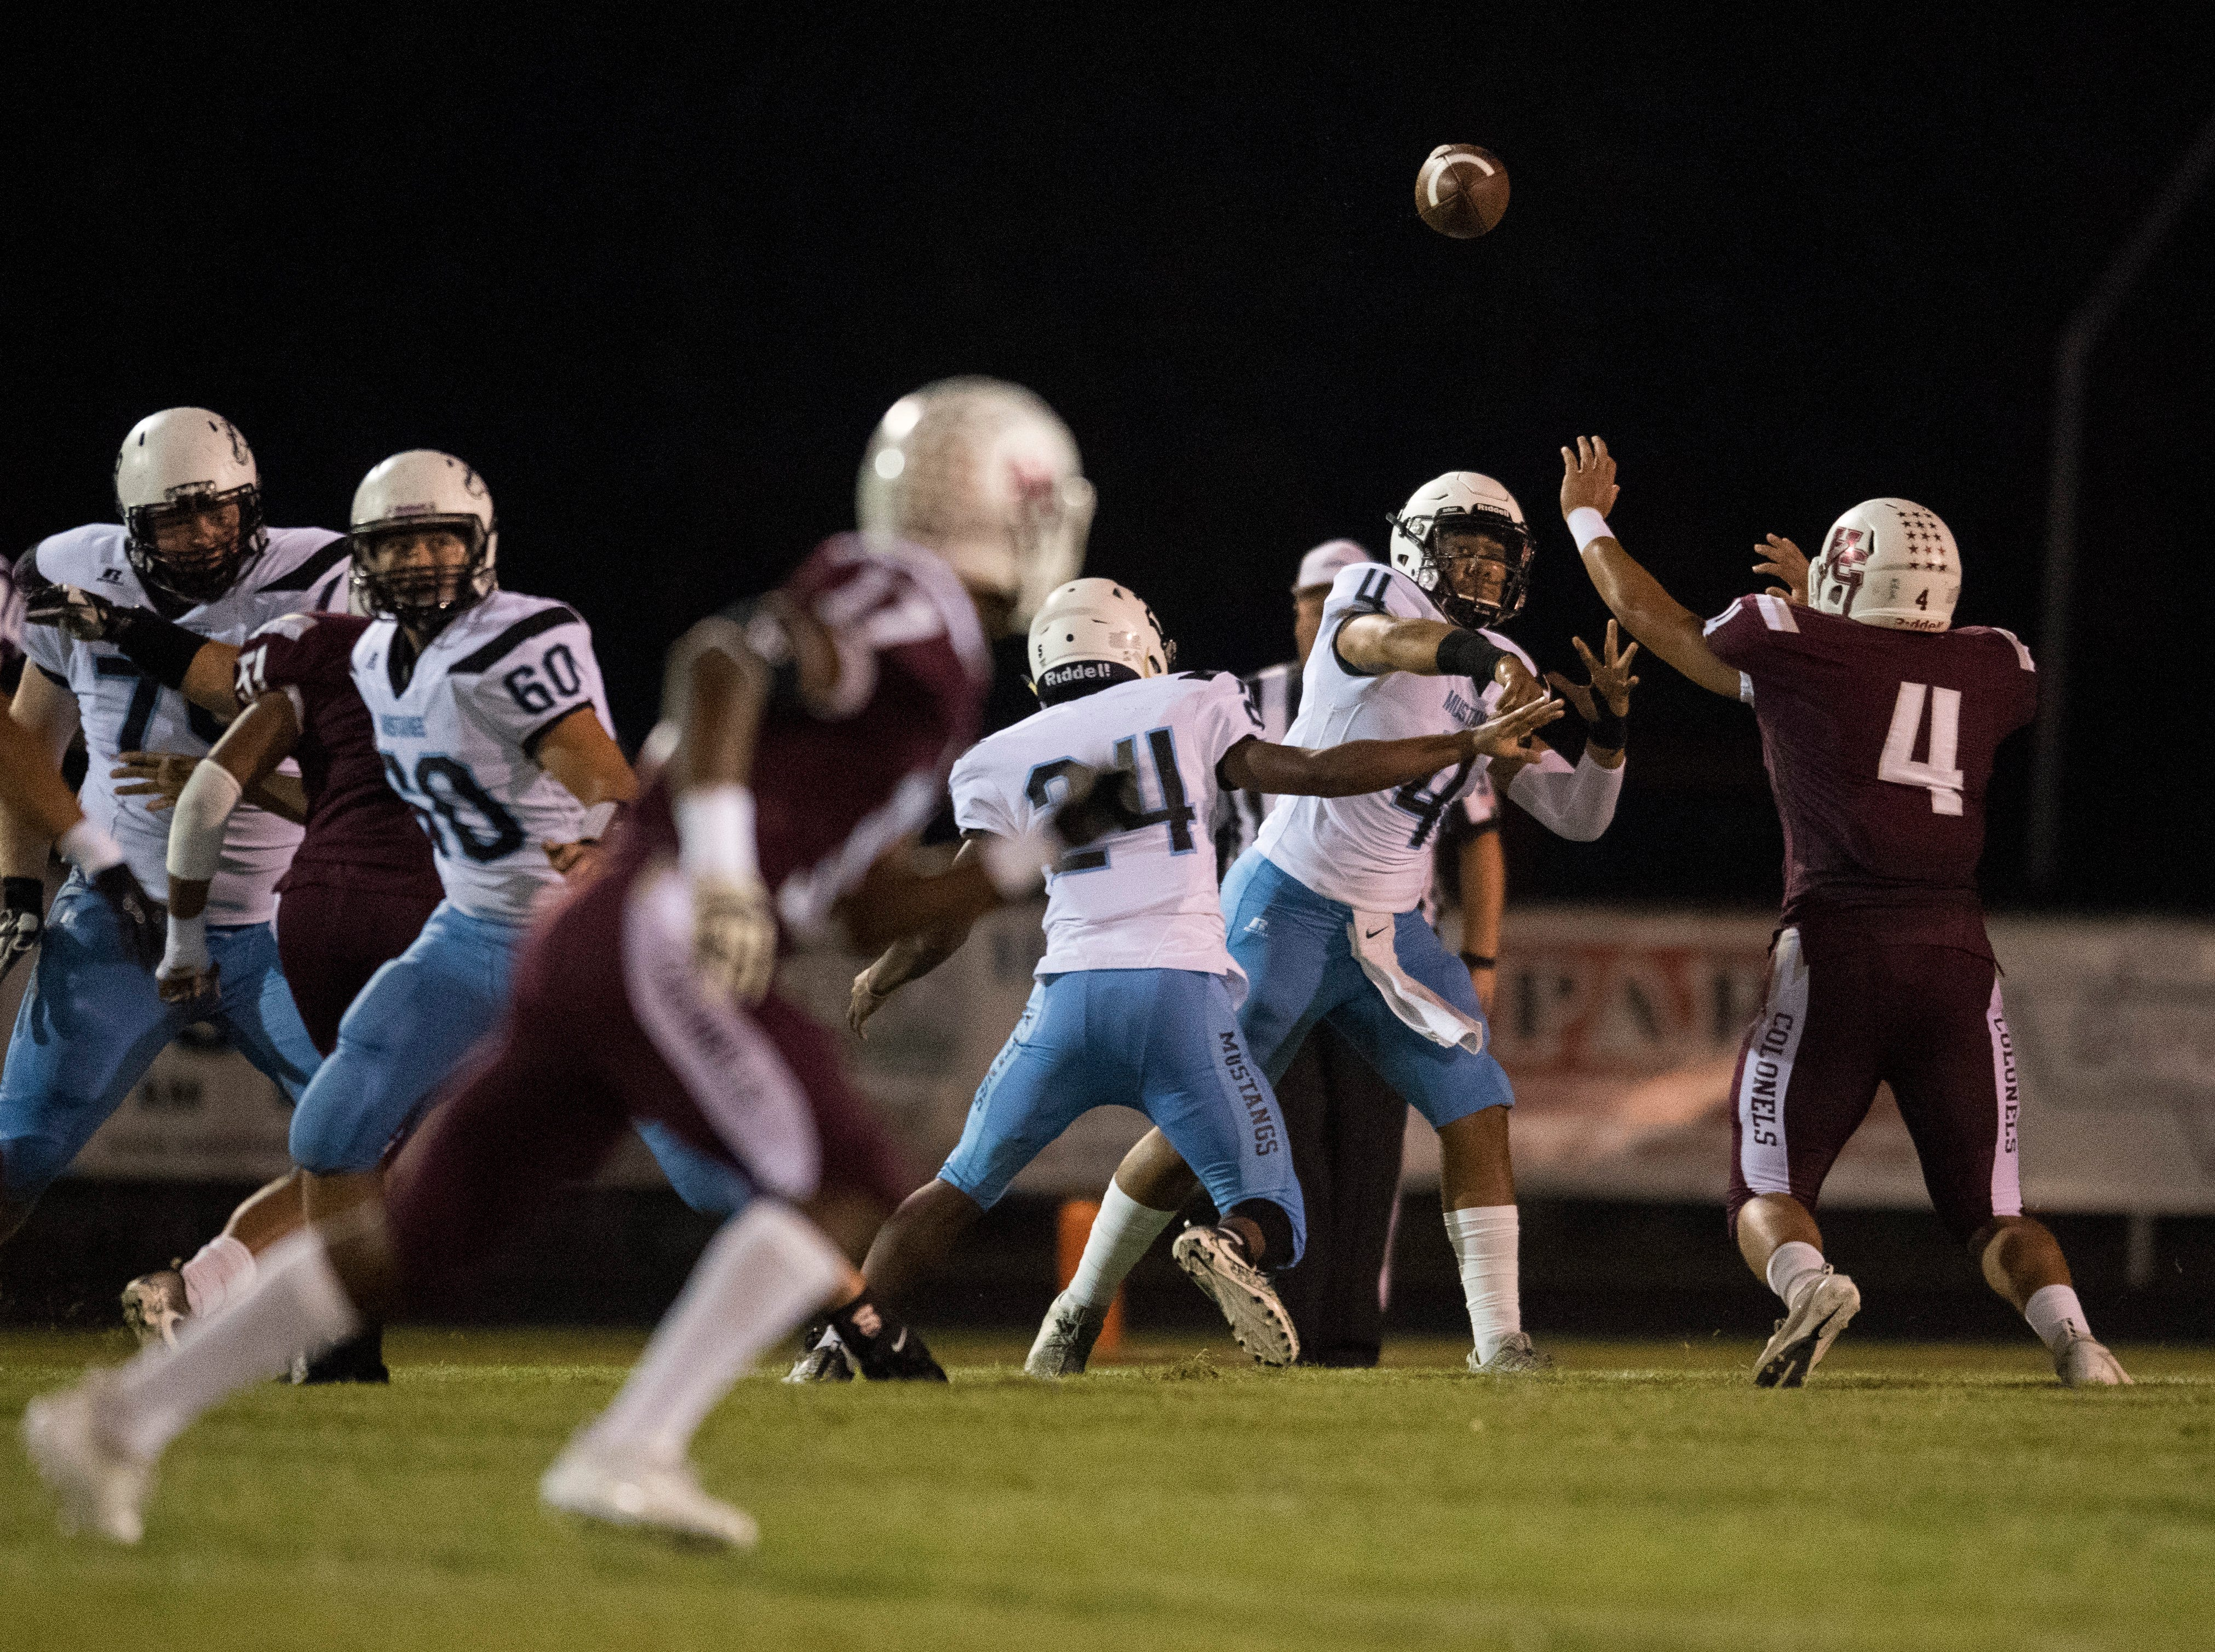 Muhlenberg County's Bronzyn Healy (4) makes a pass during the Henderson vs Muhlenberg County game Friday, Sept. 28, 2018. The Henderson County Colonels won, 61-6.